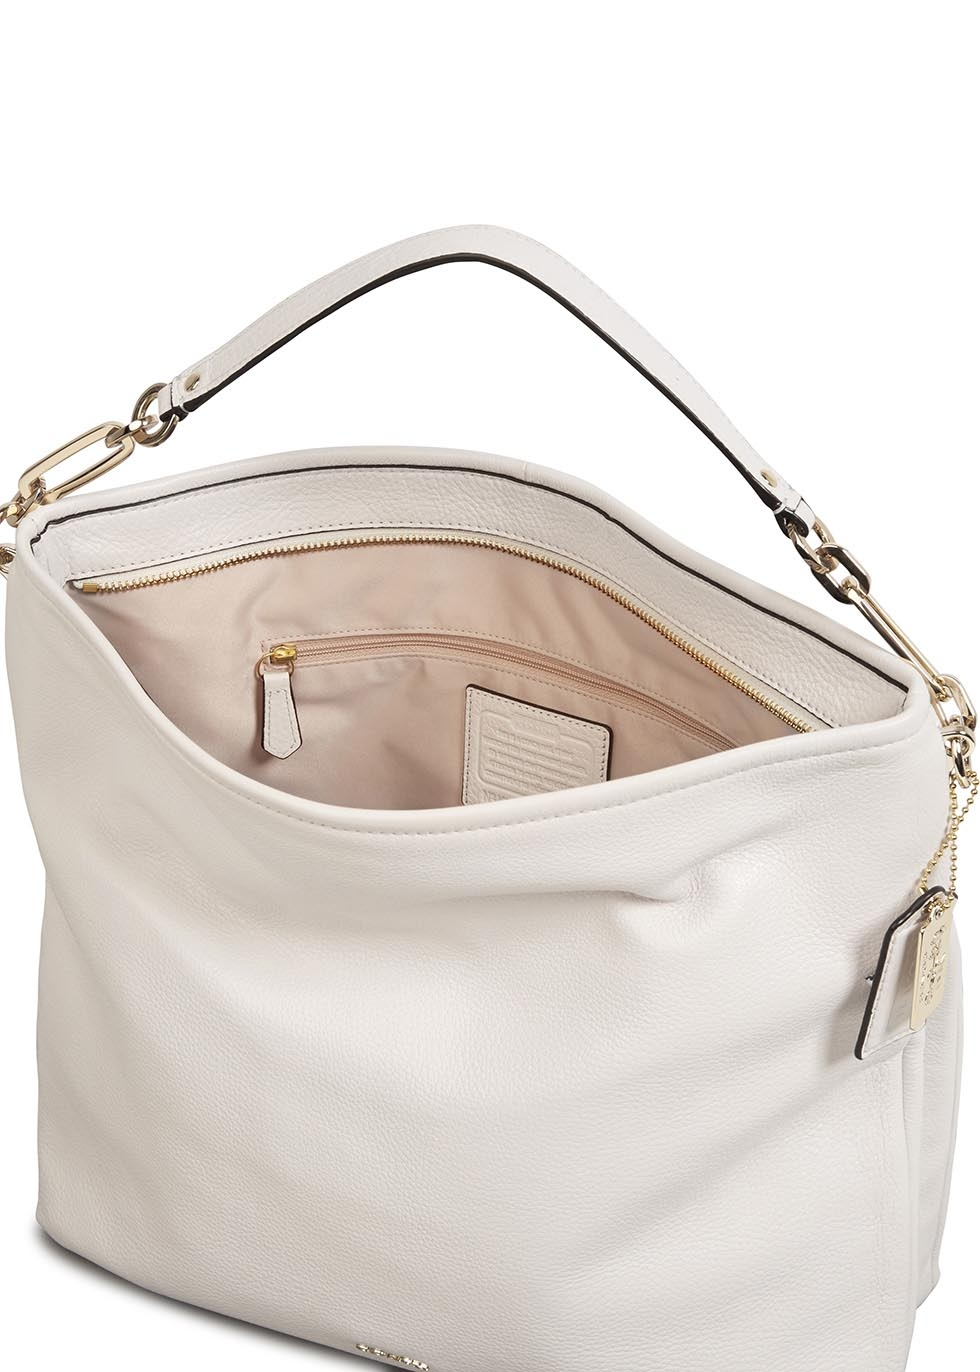 COACH Madison White Grained Leather Hobo Bag in White - Lyst 01386f3a66d62